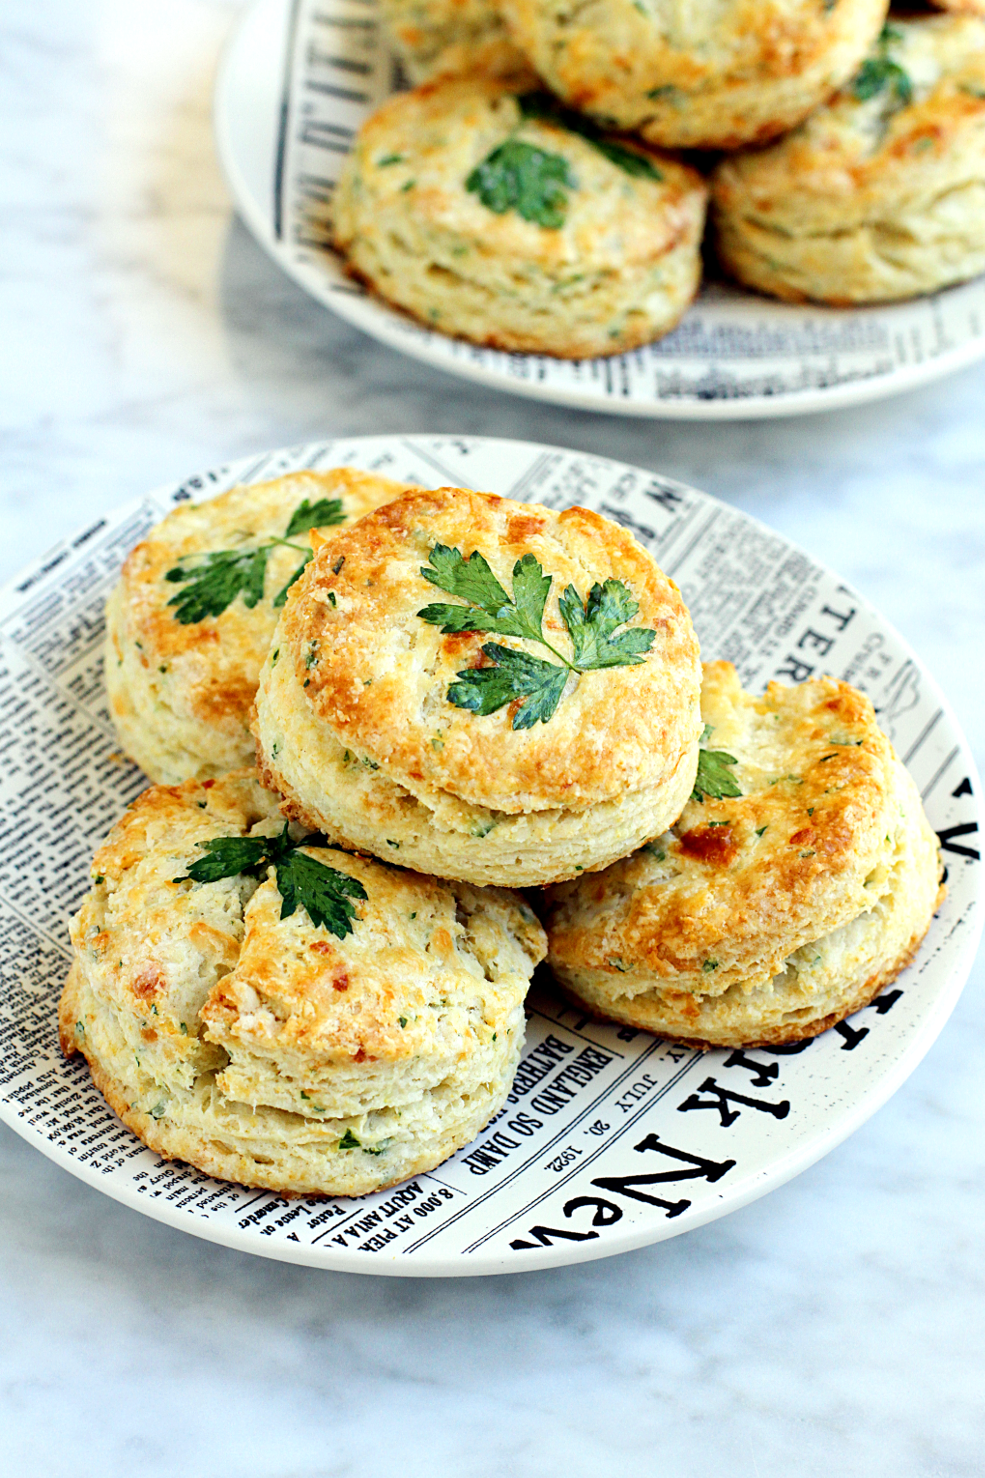 Smoked Cheddar Biscuits